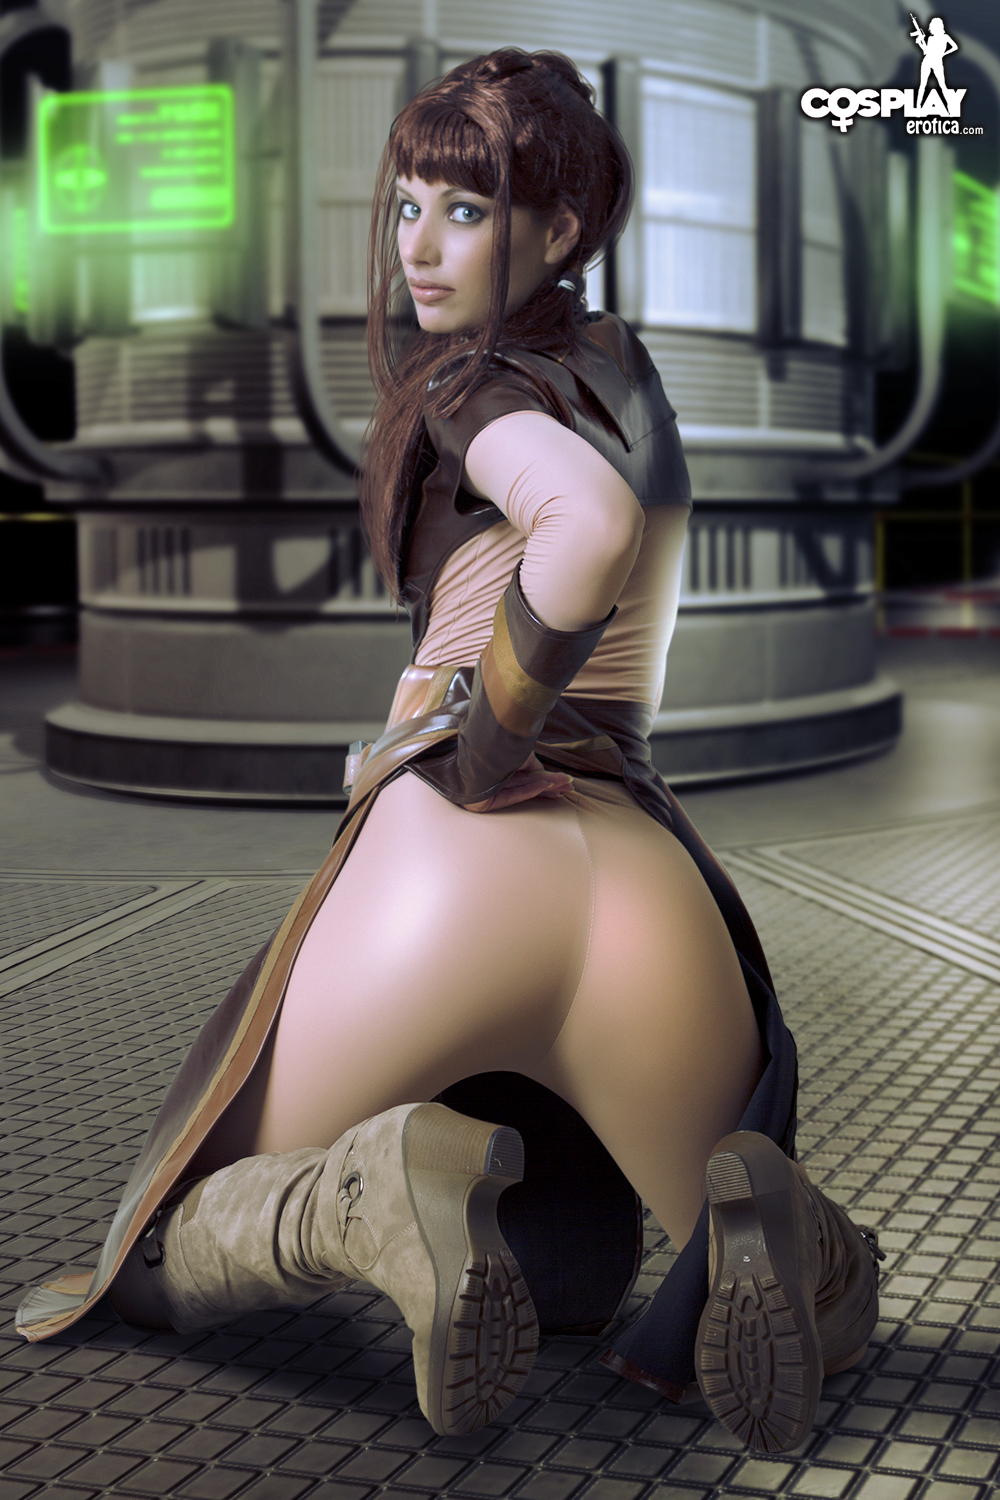 Star war nude